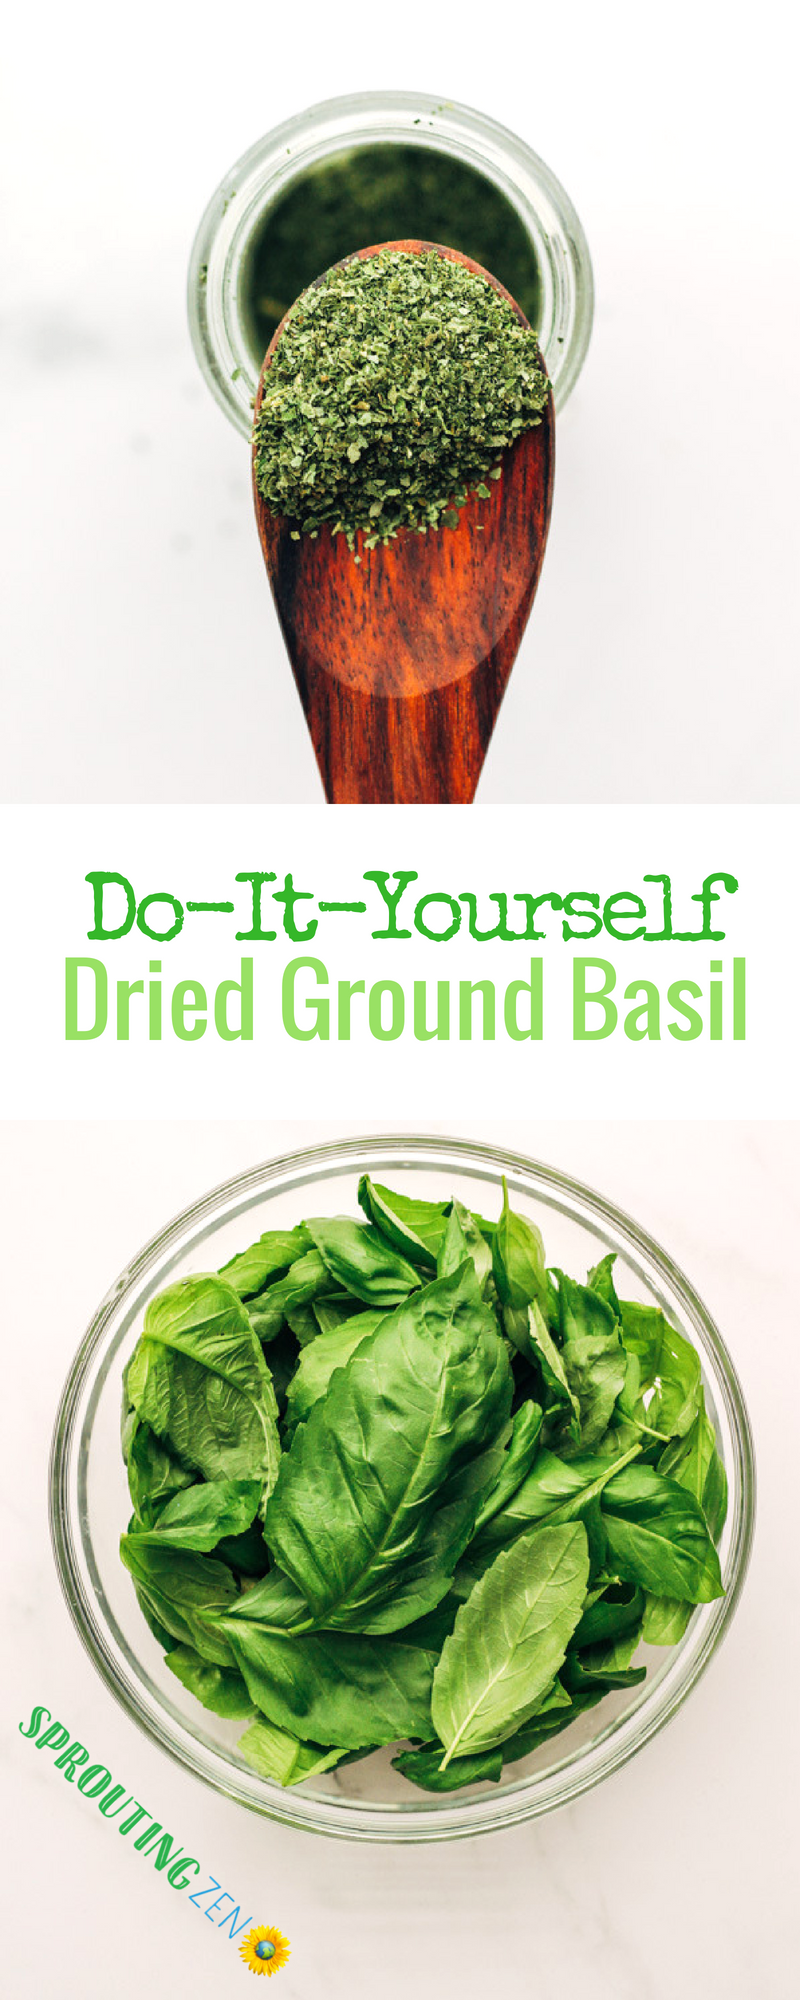 Do It Yourself Dried Powdered Basil